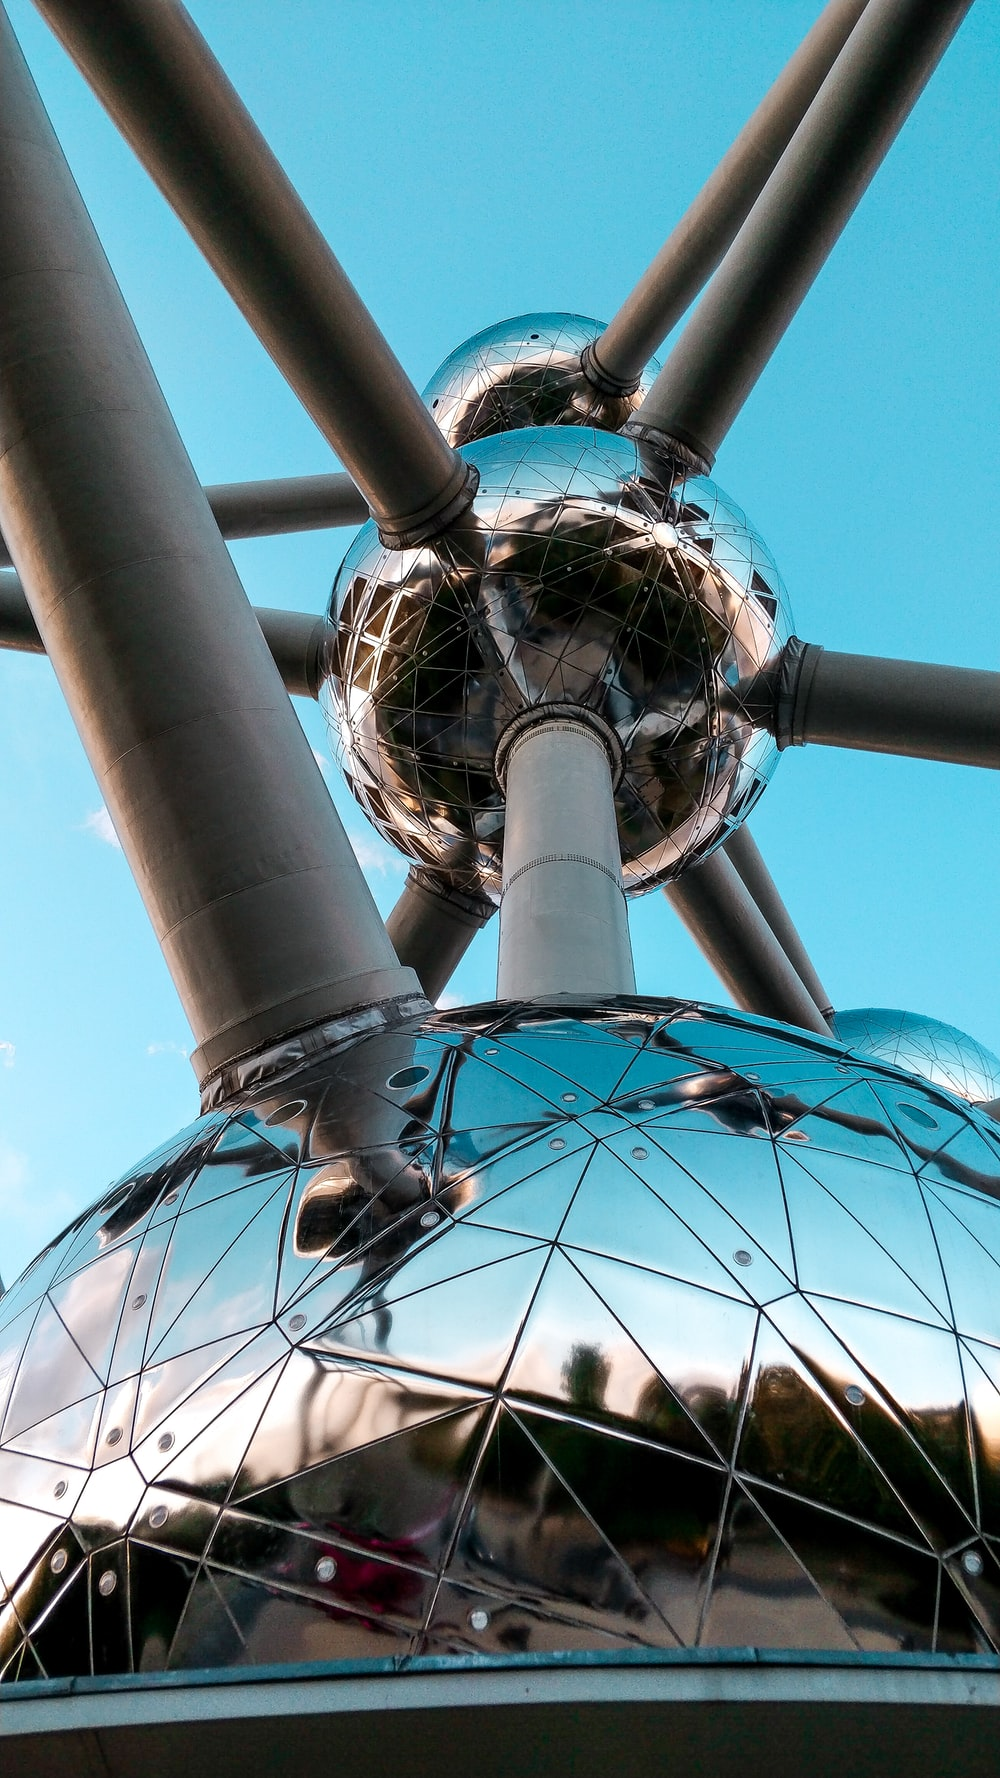 silver-colored spherical structure with attached gray pipes under blue sky